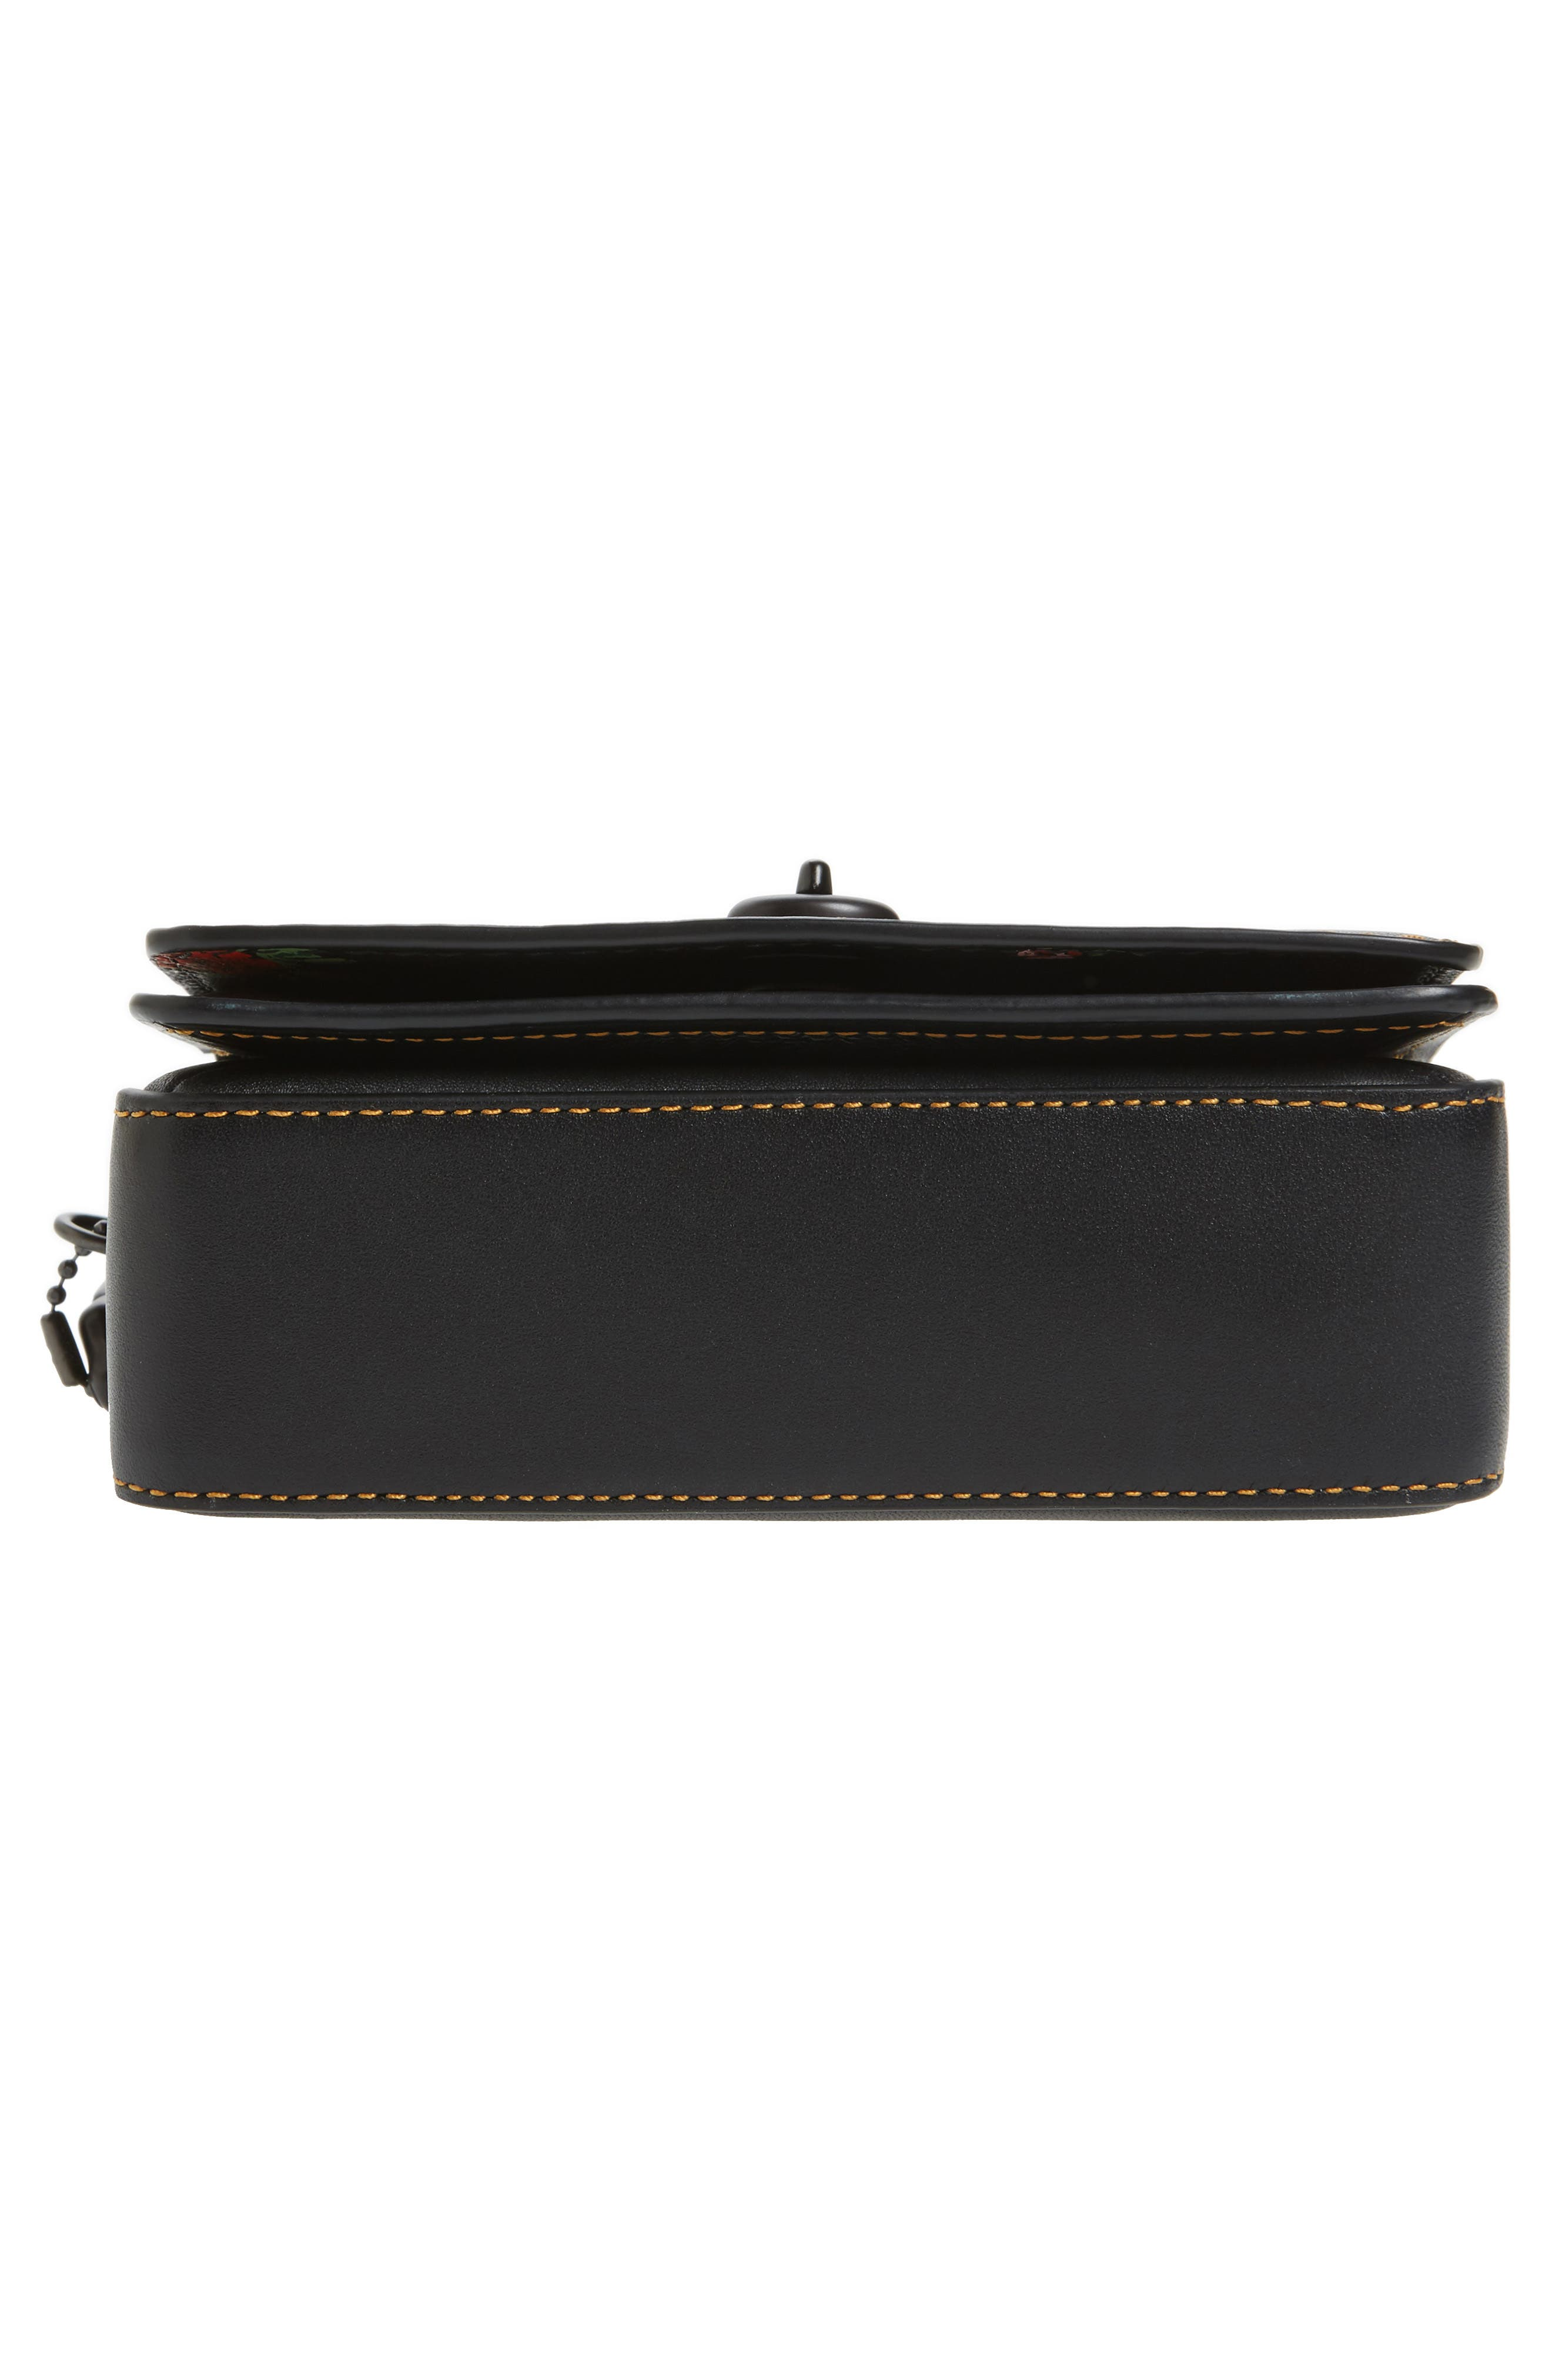 Dinky 15 Leather Crossbody Bag,                             Alternate thumbnail 6, color,                             Black